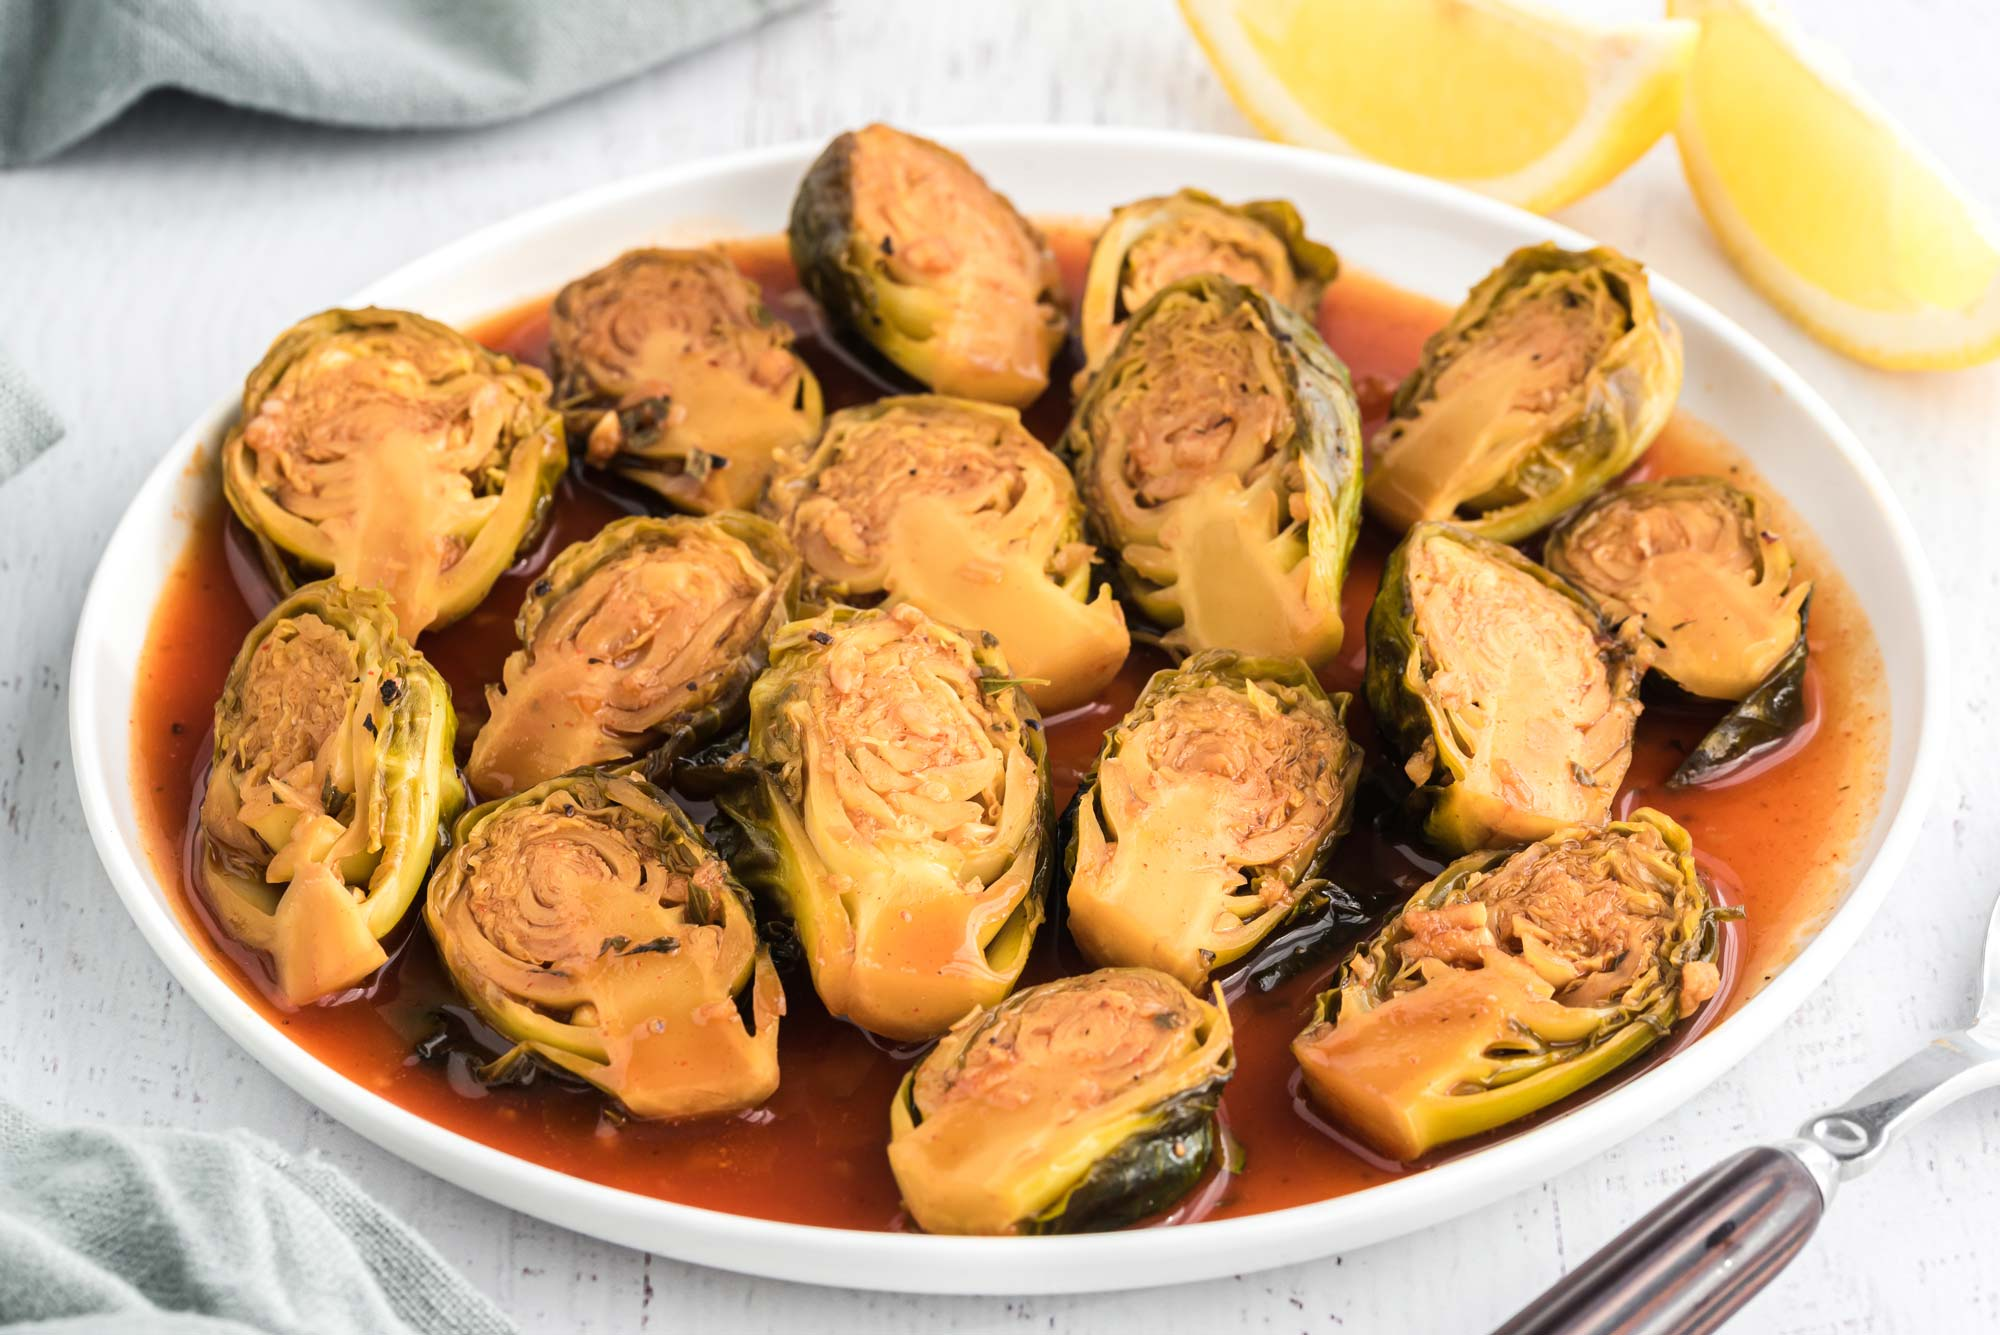 lemon thyme brussel sprouts on dish